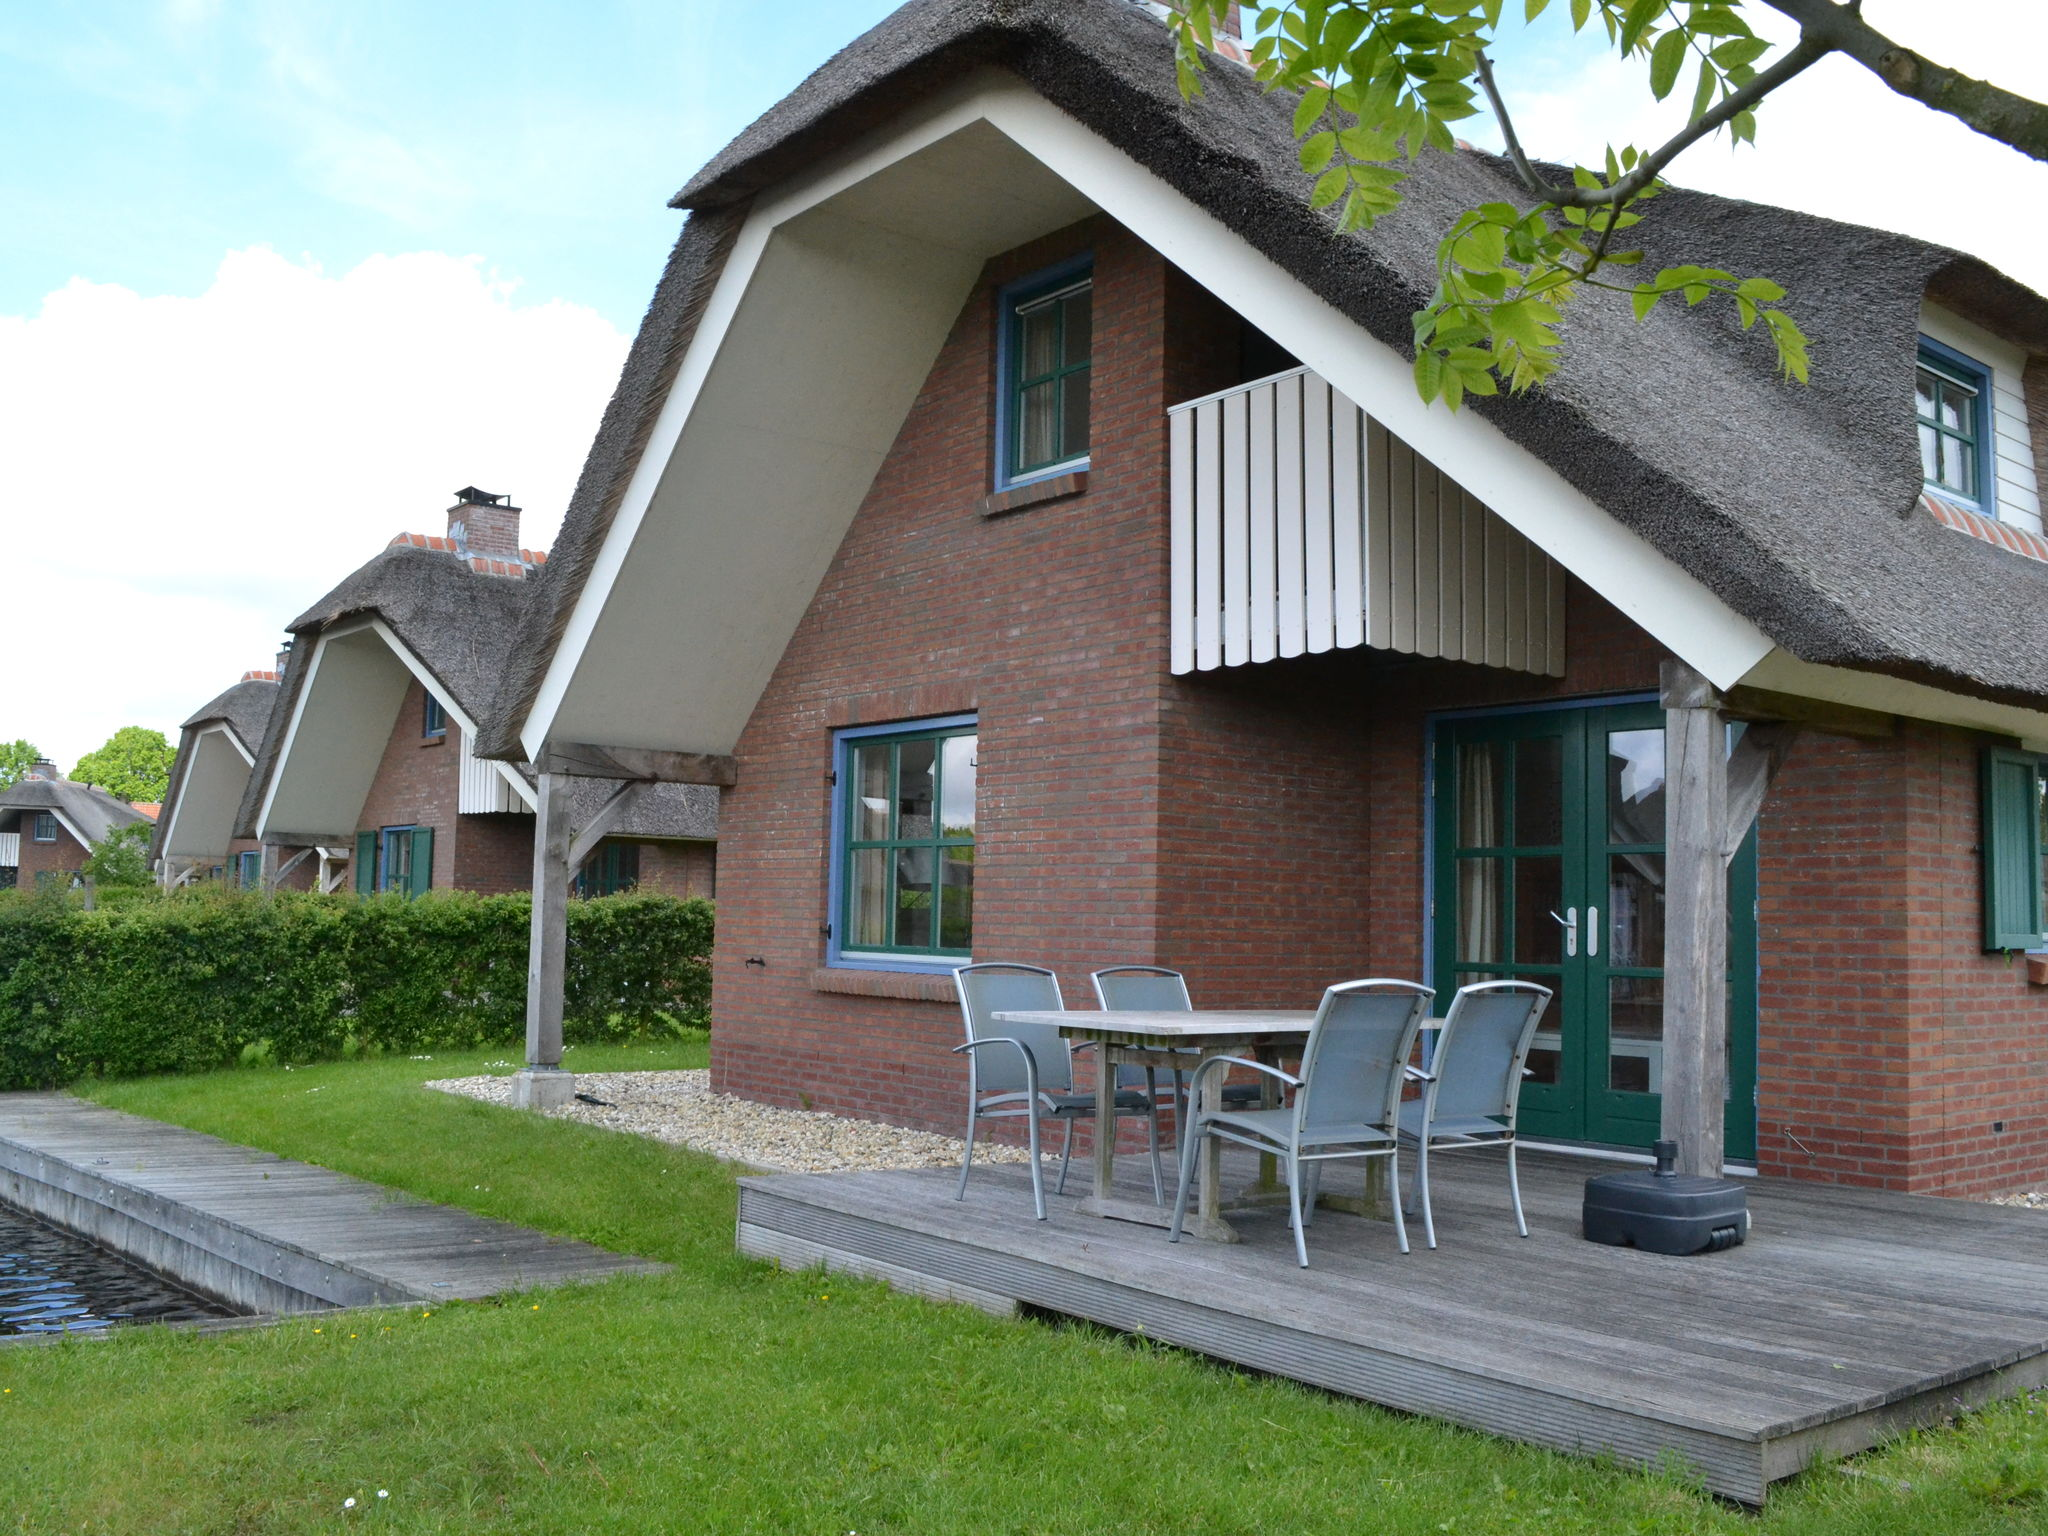 Holland | Overijssel | Holiday home Waterpark Belterwiede - Type Gaarde | all year | GardenSummer